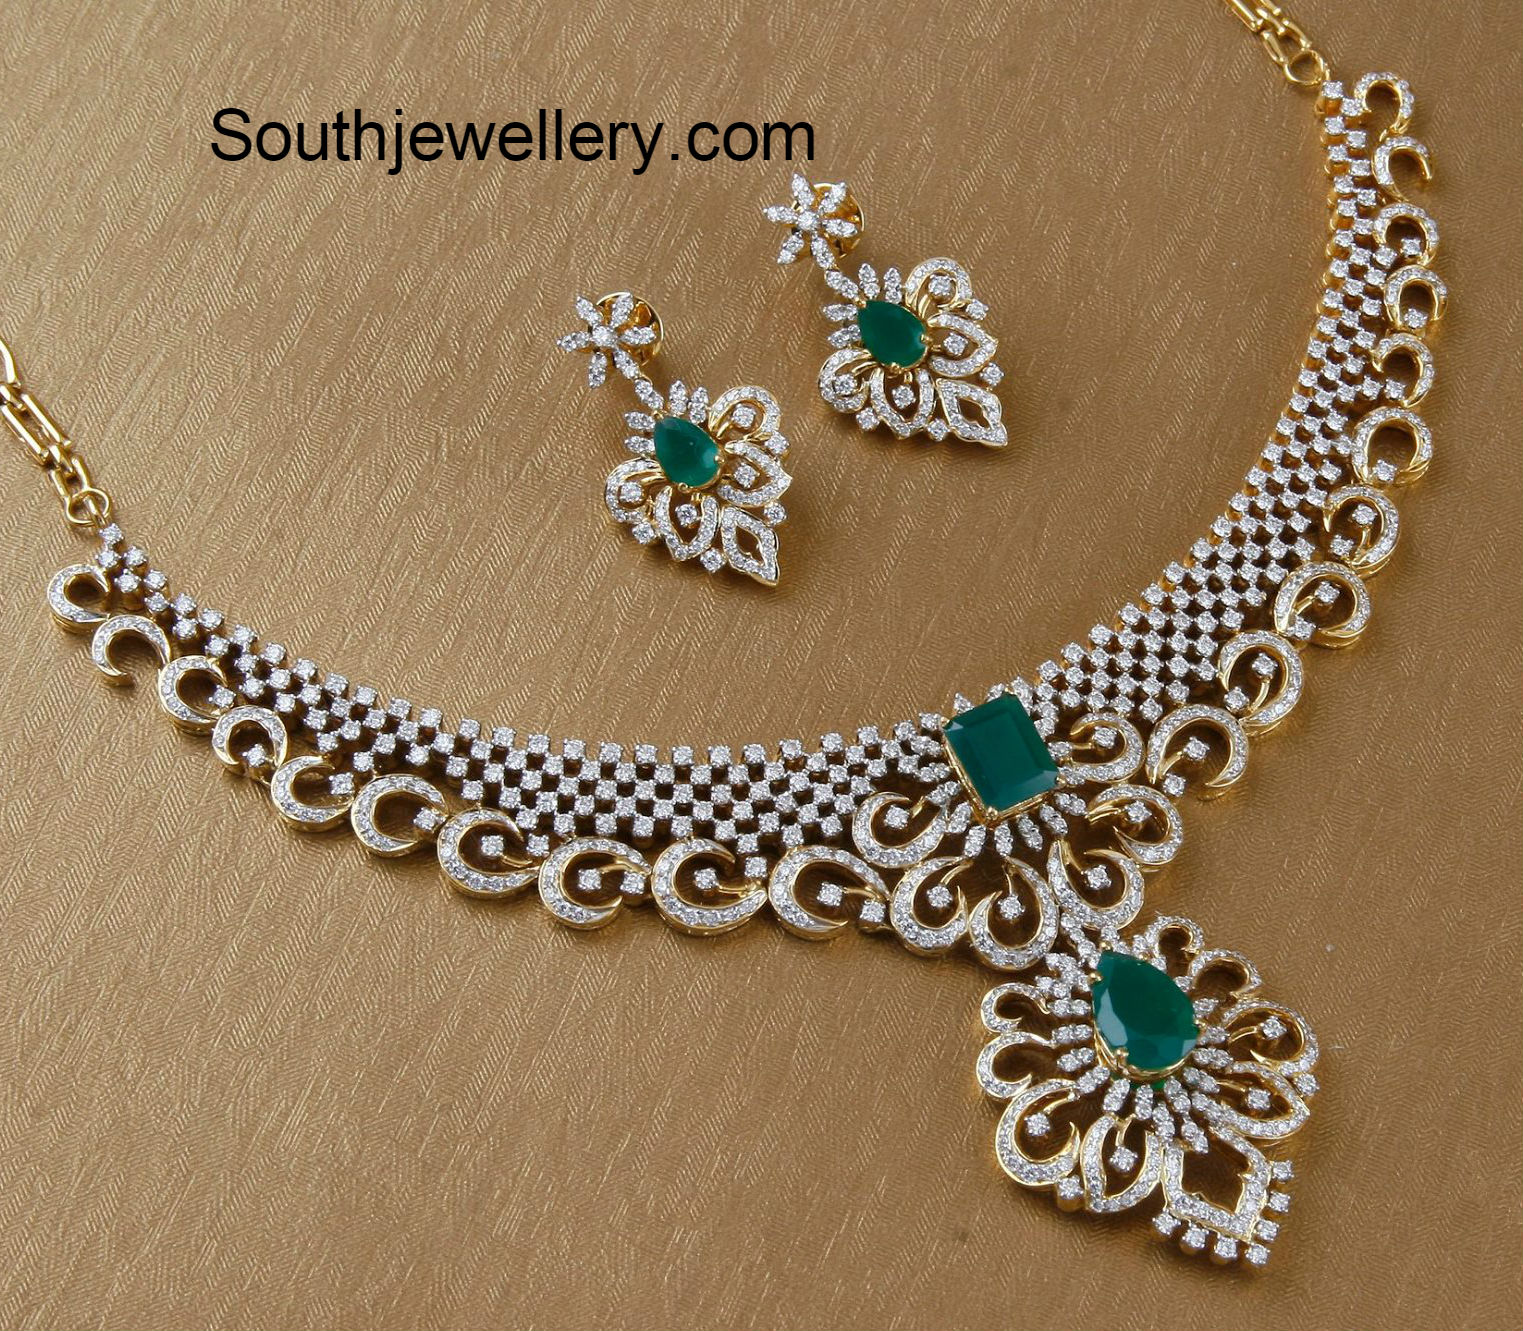 Latest Indian Jewellery Designs 2015: Jewellery Designs